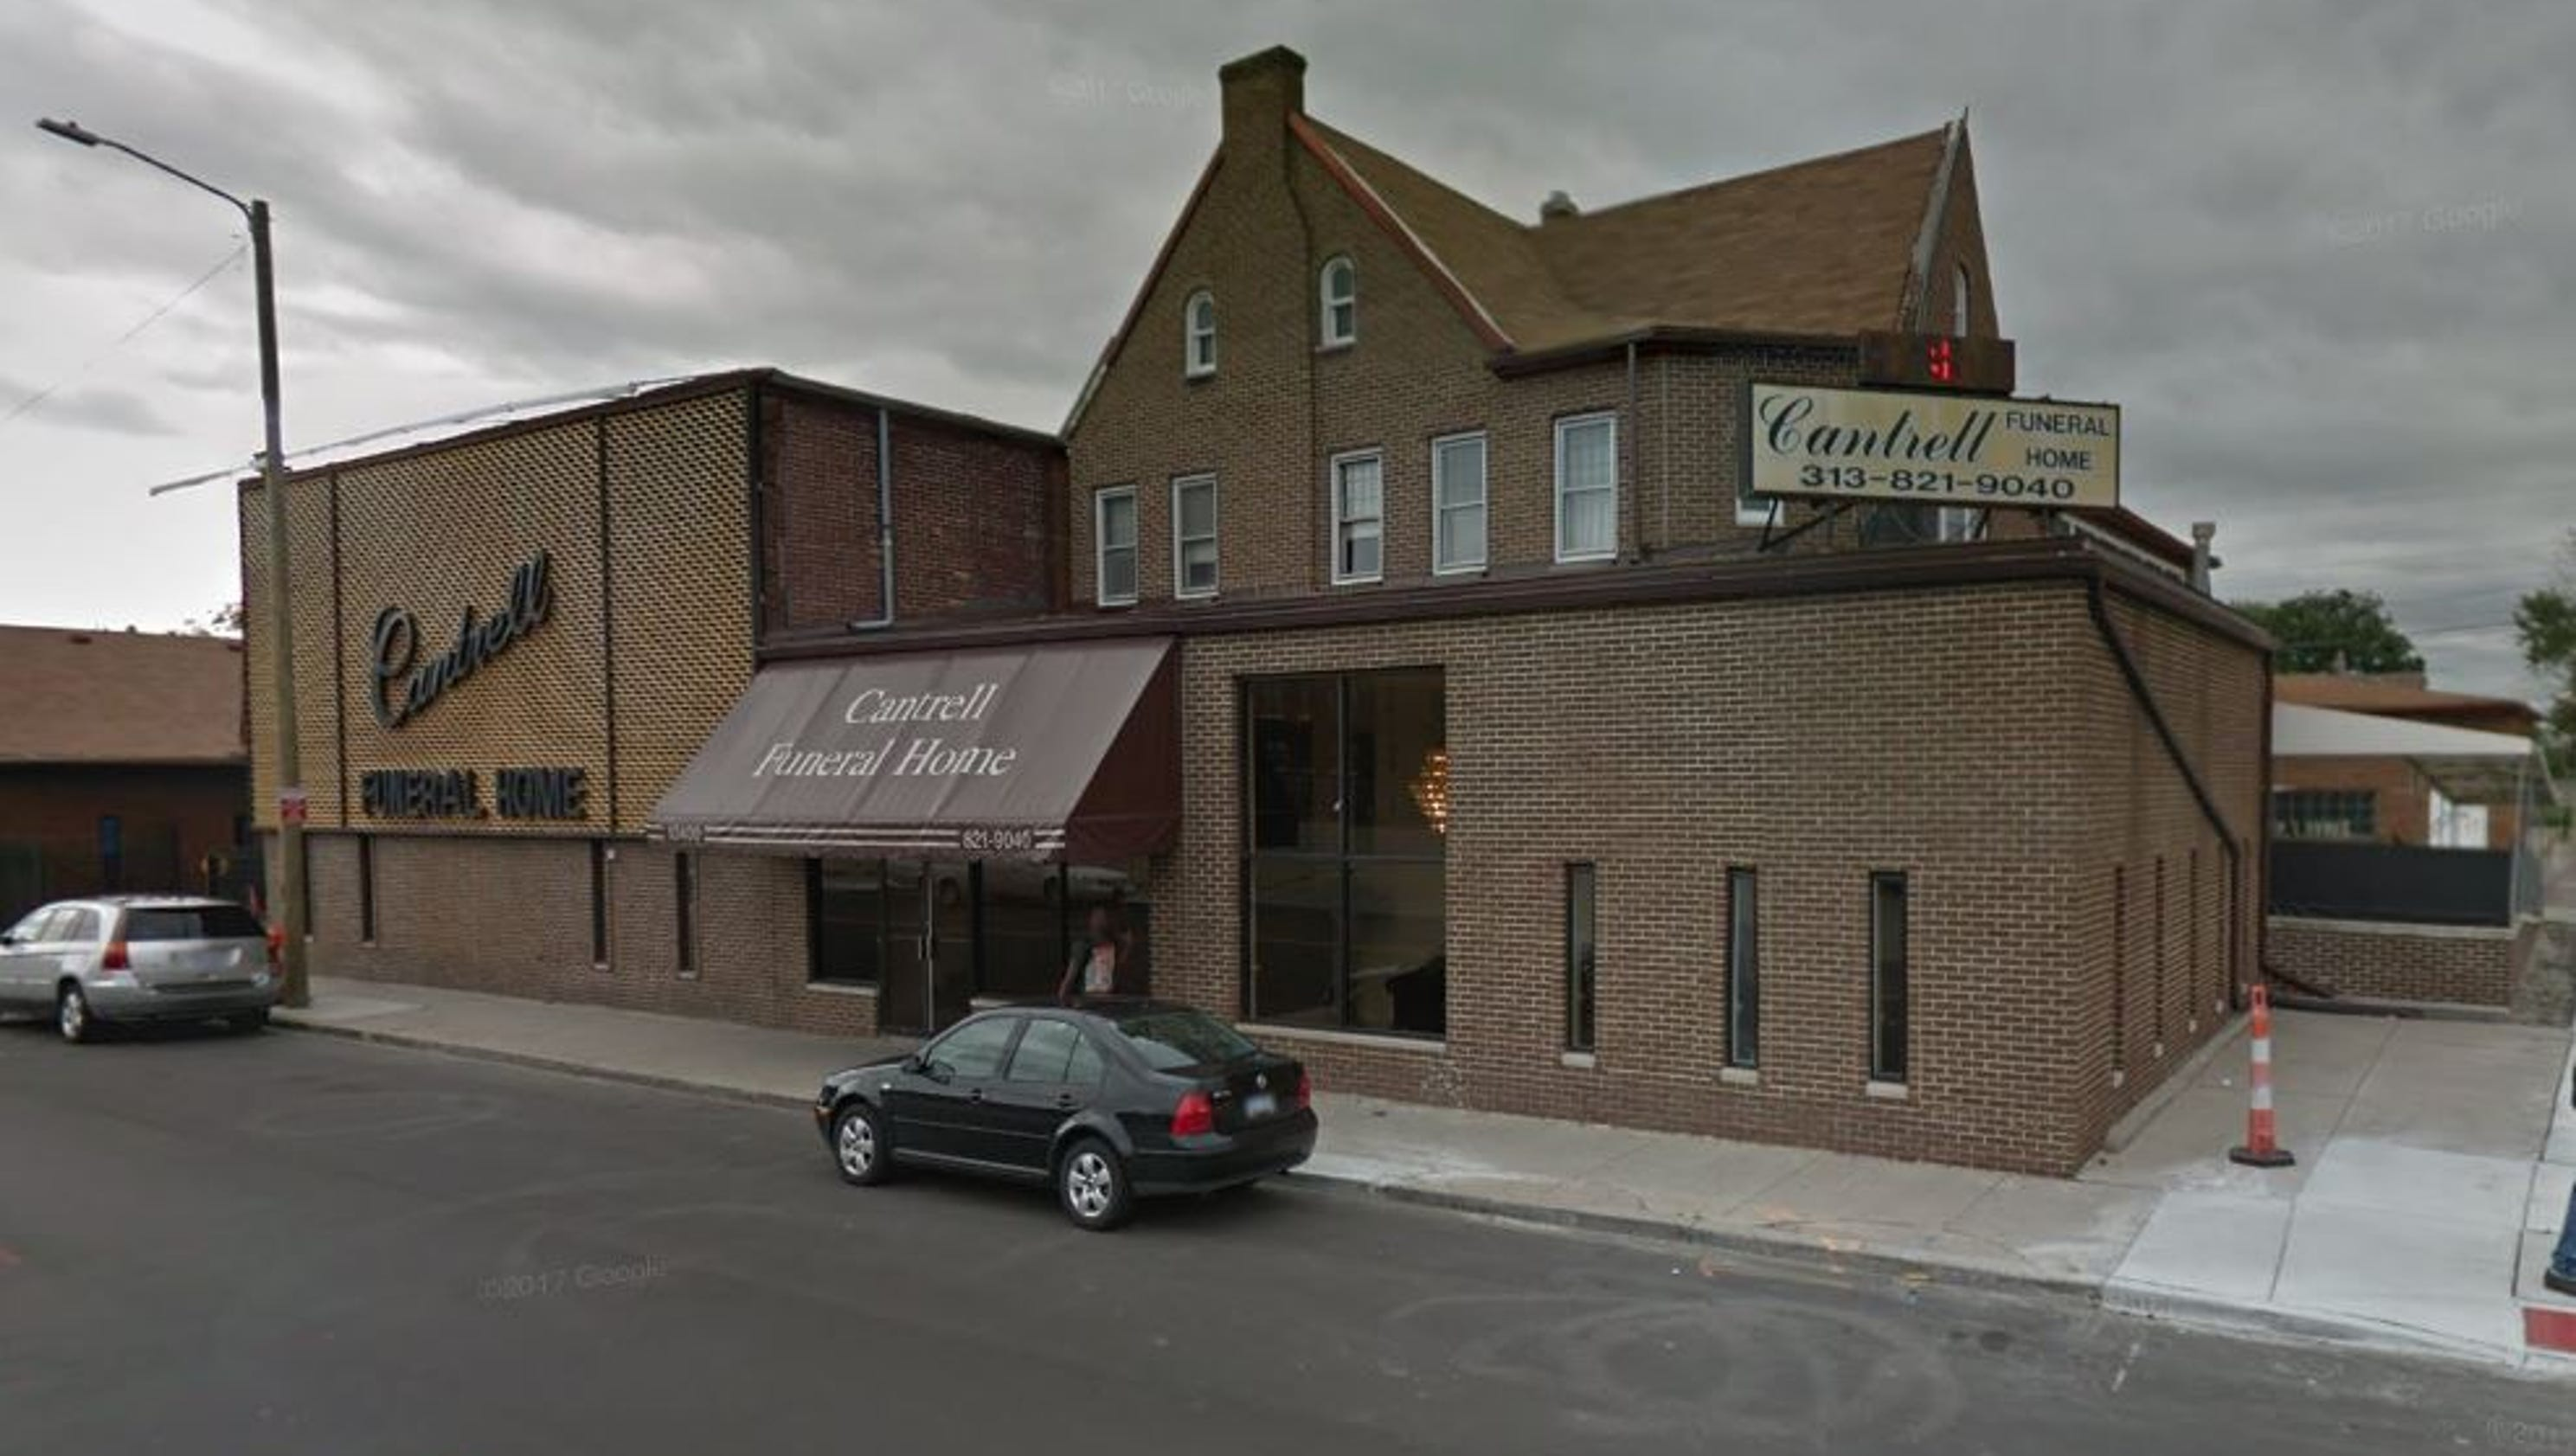 HORROR Moldcovered Bodies Found At Funeral Home